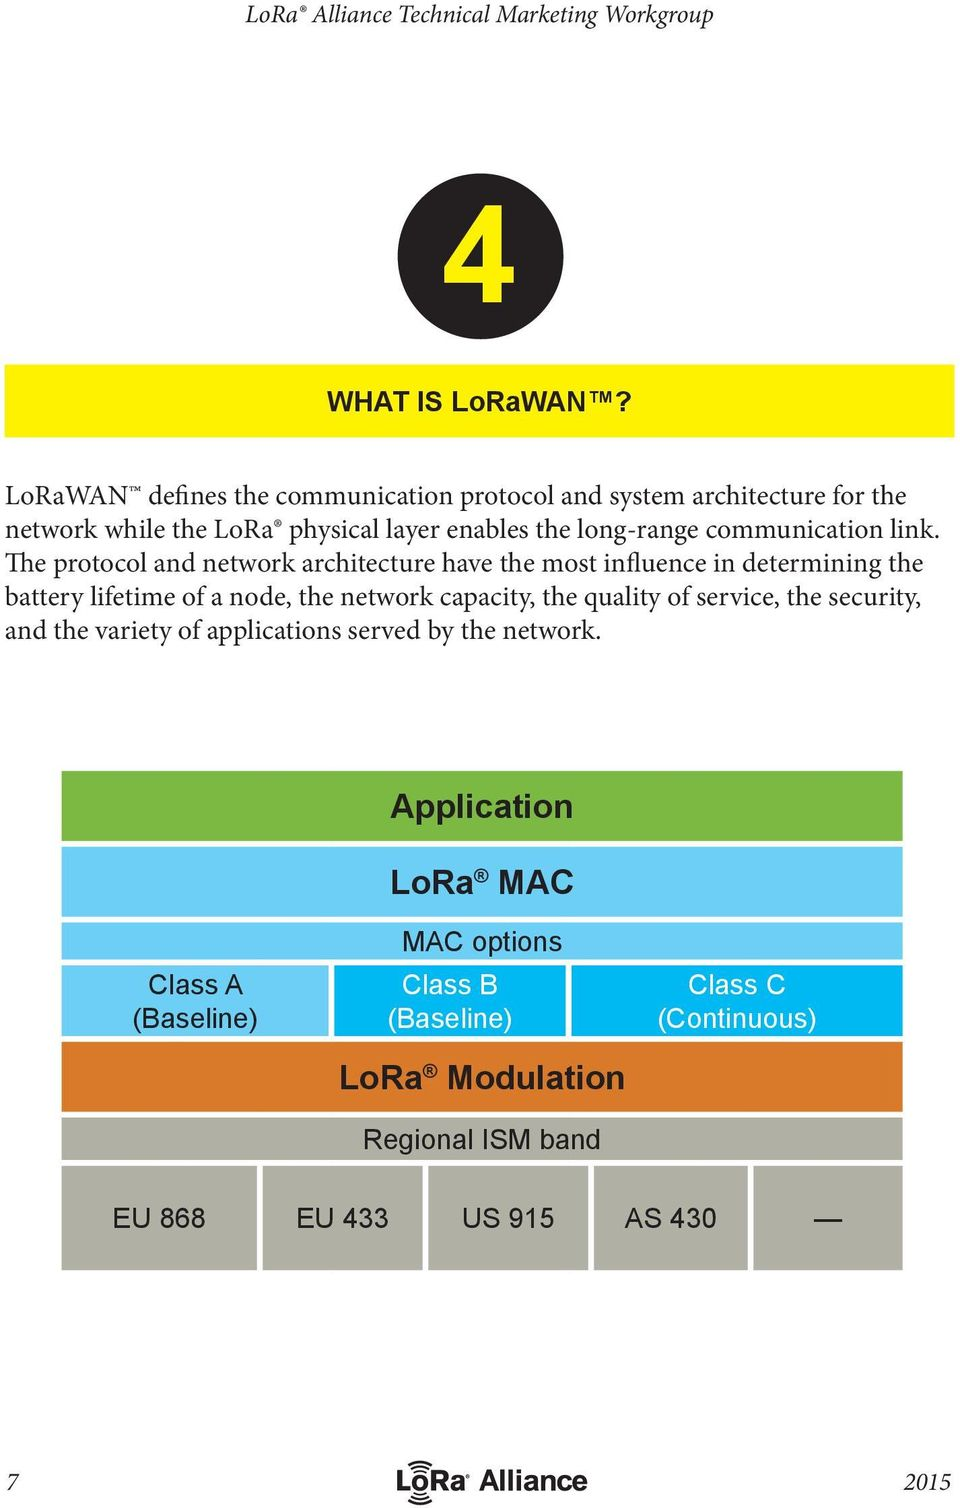 LoRaWAN  What is it? A technical overview of LoRa and